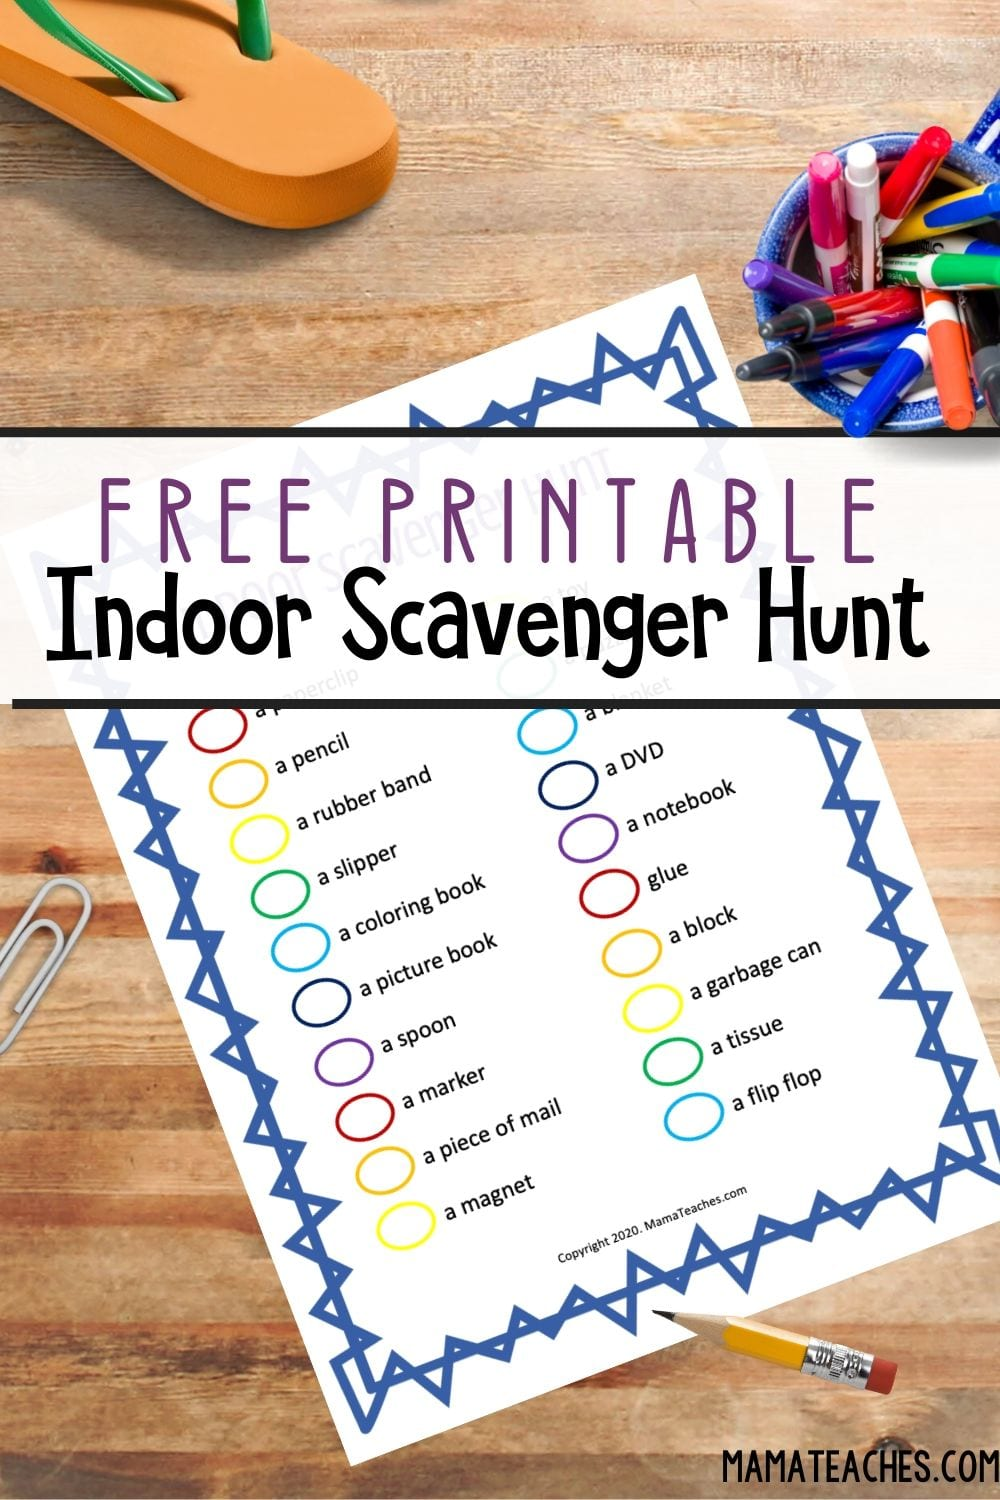 Free Printable Indoor Scavenger Hunt for Kids - MamaTeaches